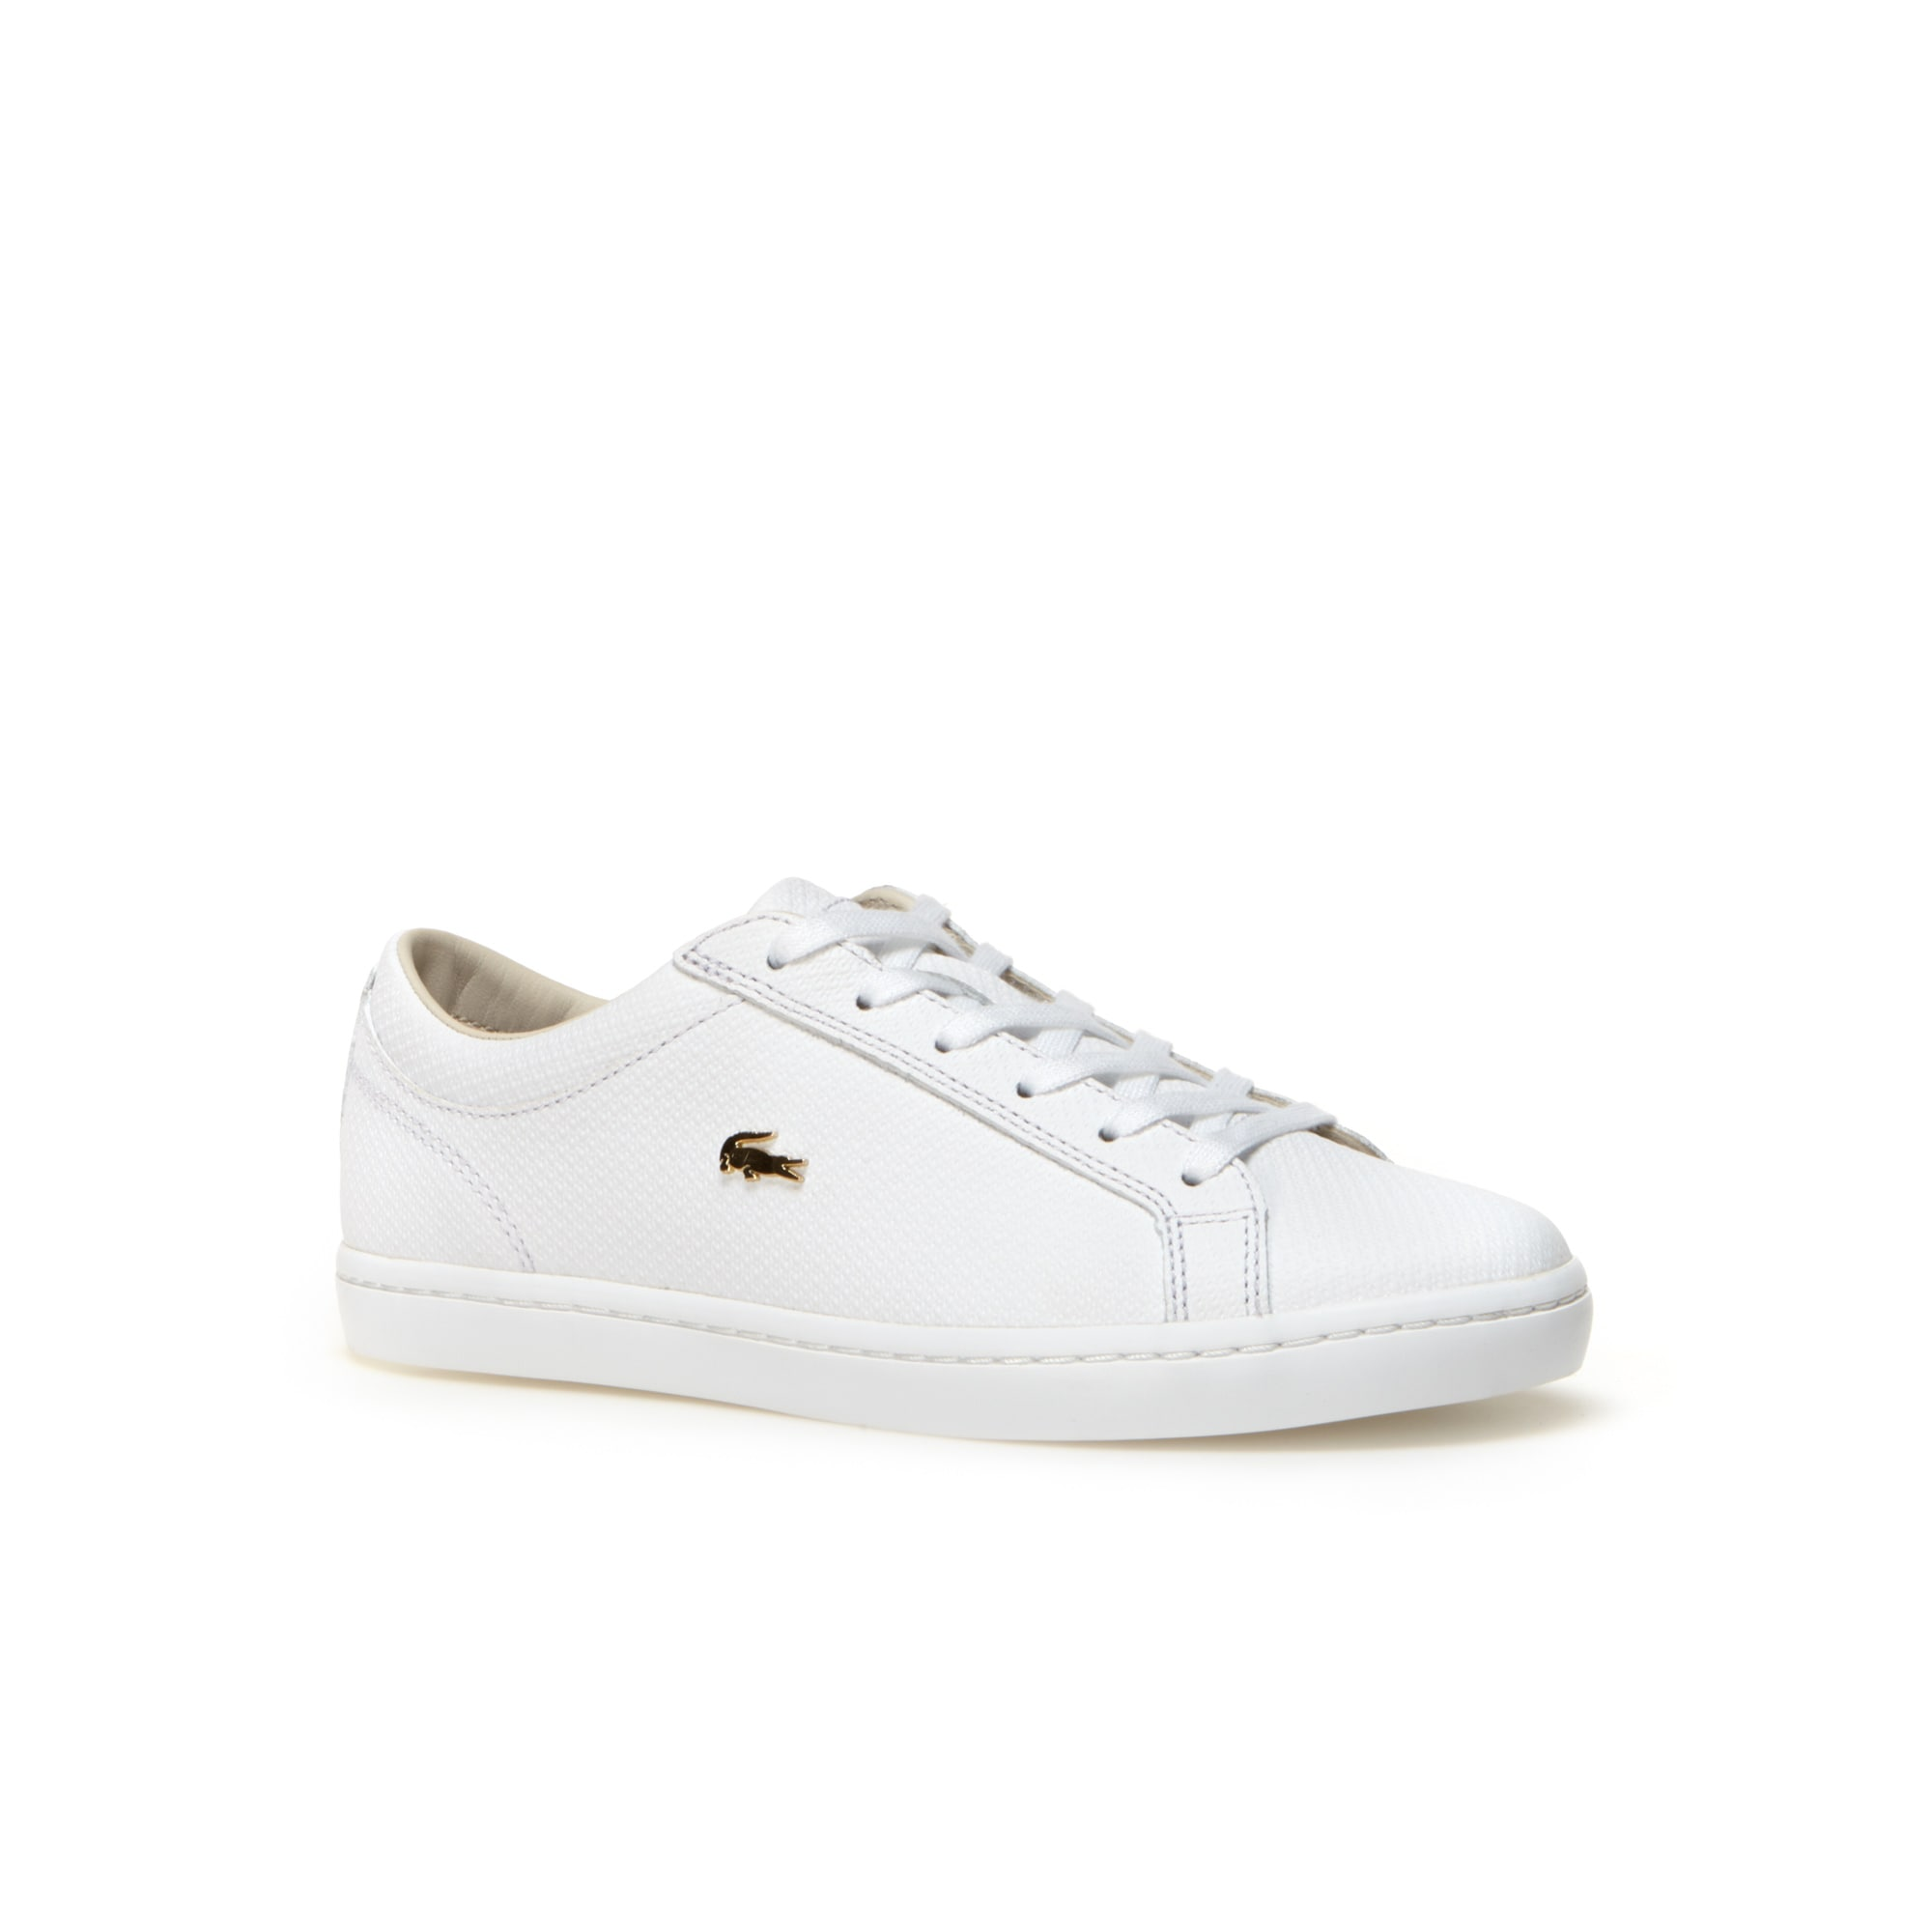 b6008beb9 Women s Straightset Leather trainers With Golden Croc